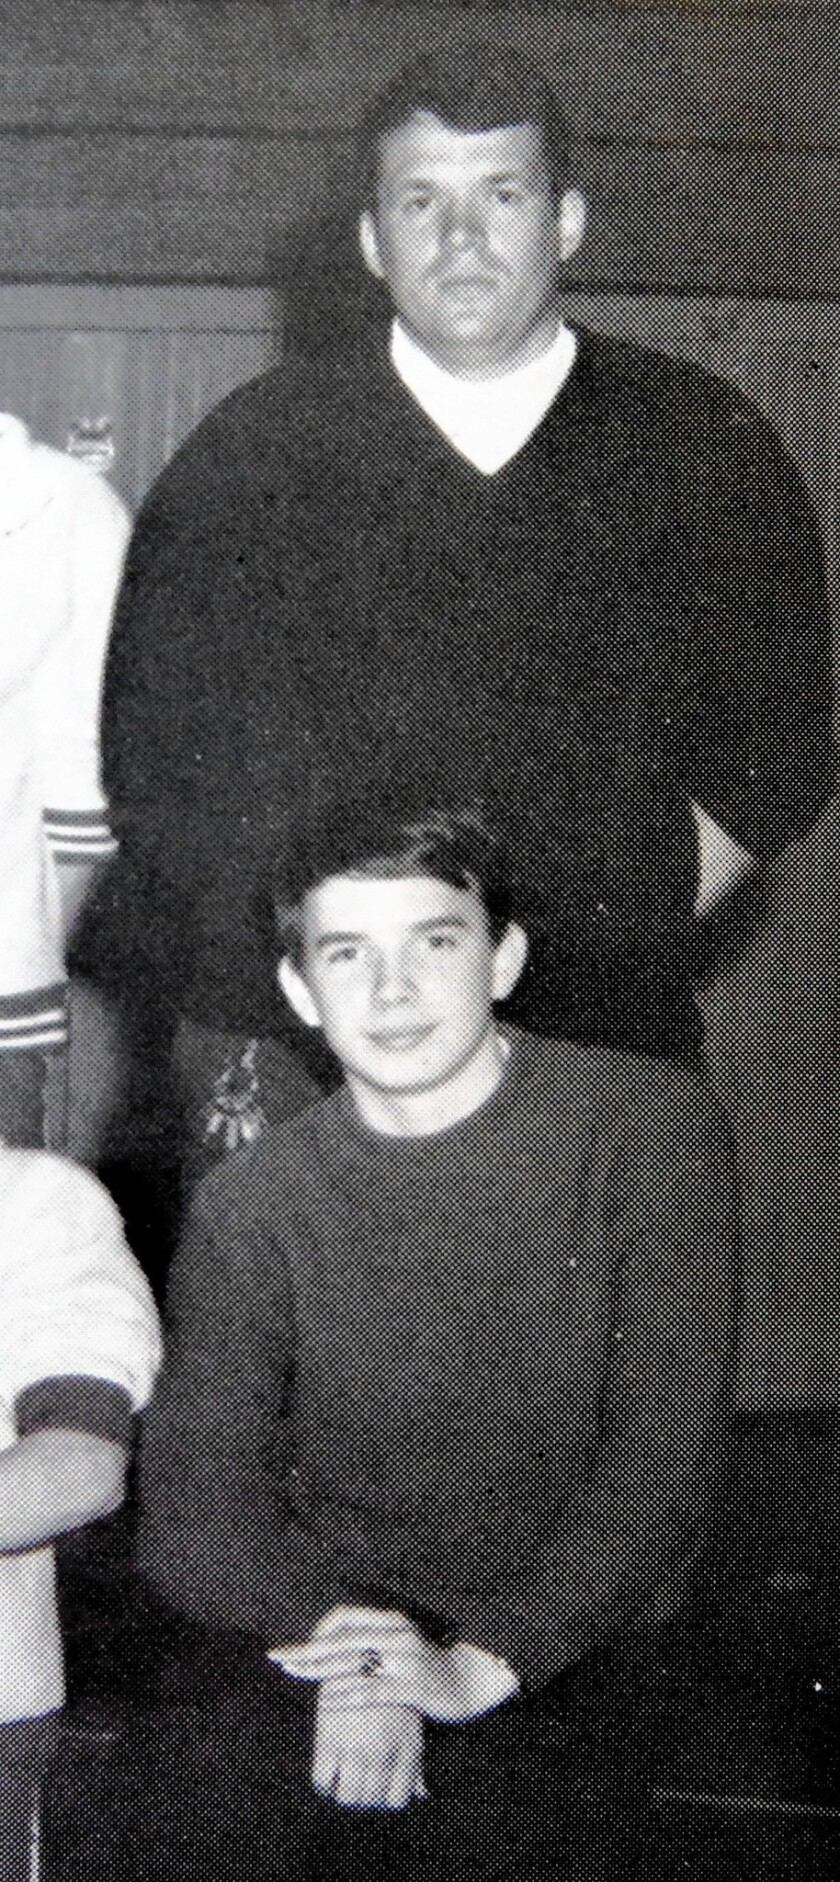 Then-teacher and coach Dennis Hastert with Stephen Reinboldt (below) in the 1970 Yorkville High School yearbook. Reinboldt's sister has alleged that he told her Hastert sexually abused him during his high school years. Reinboldt died in 1995.